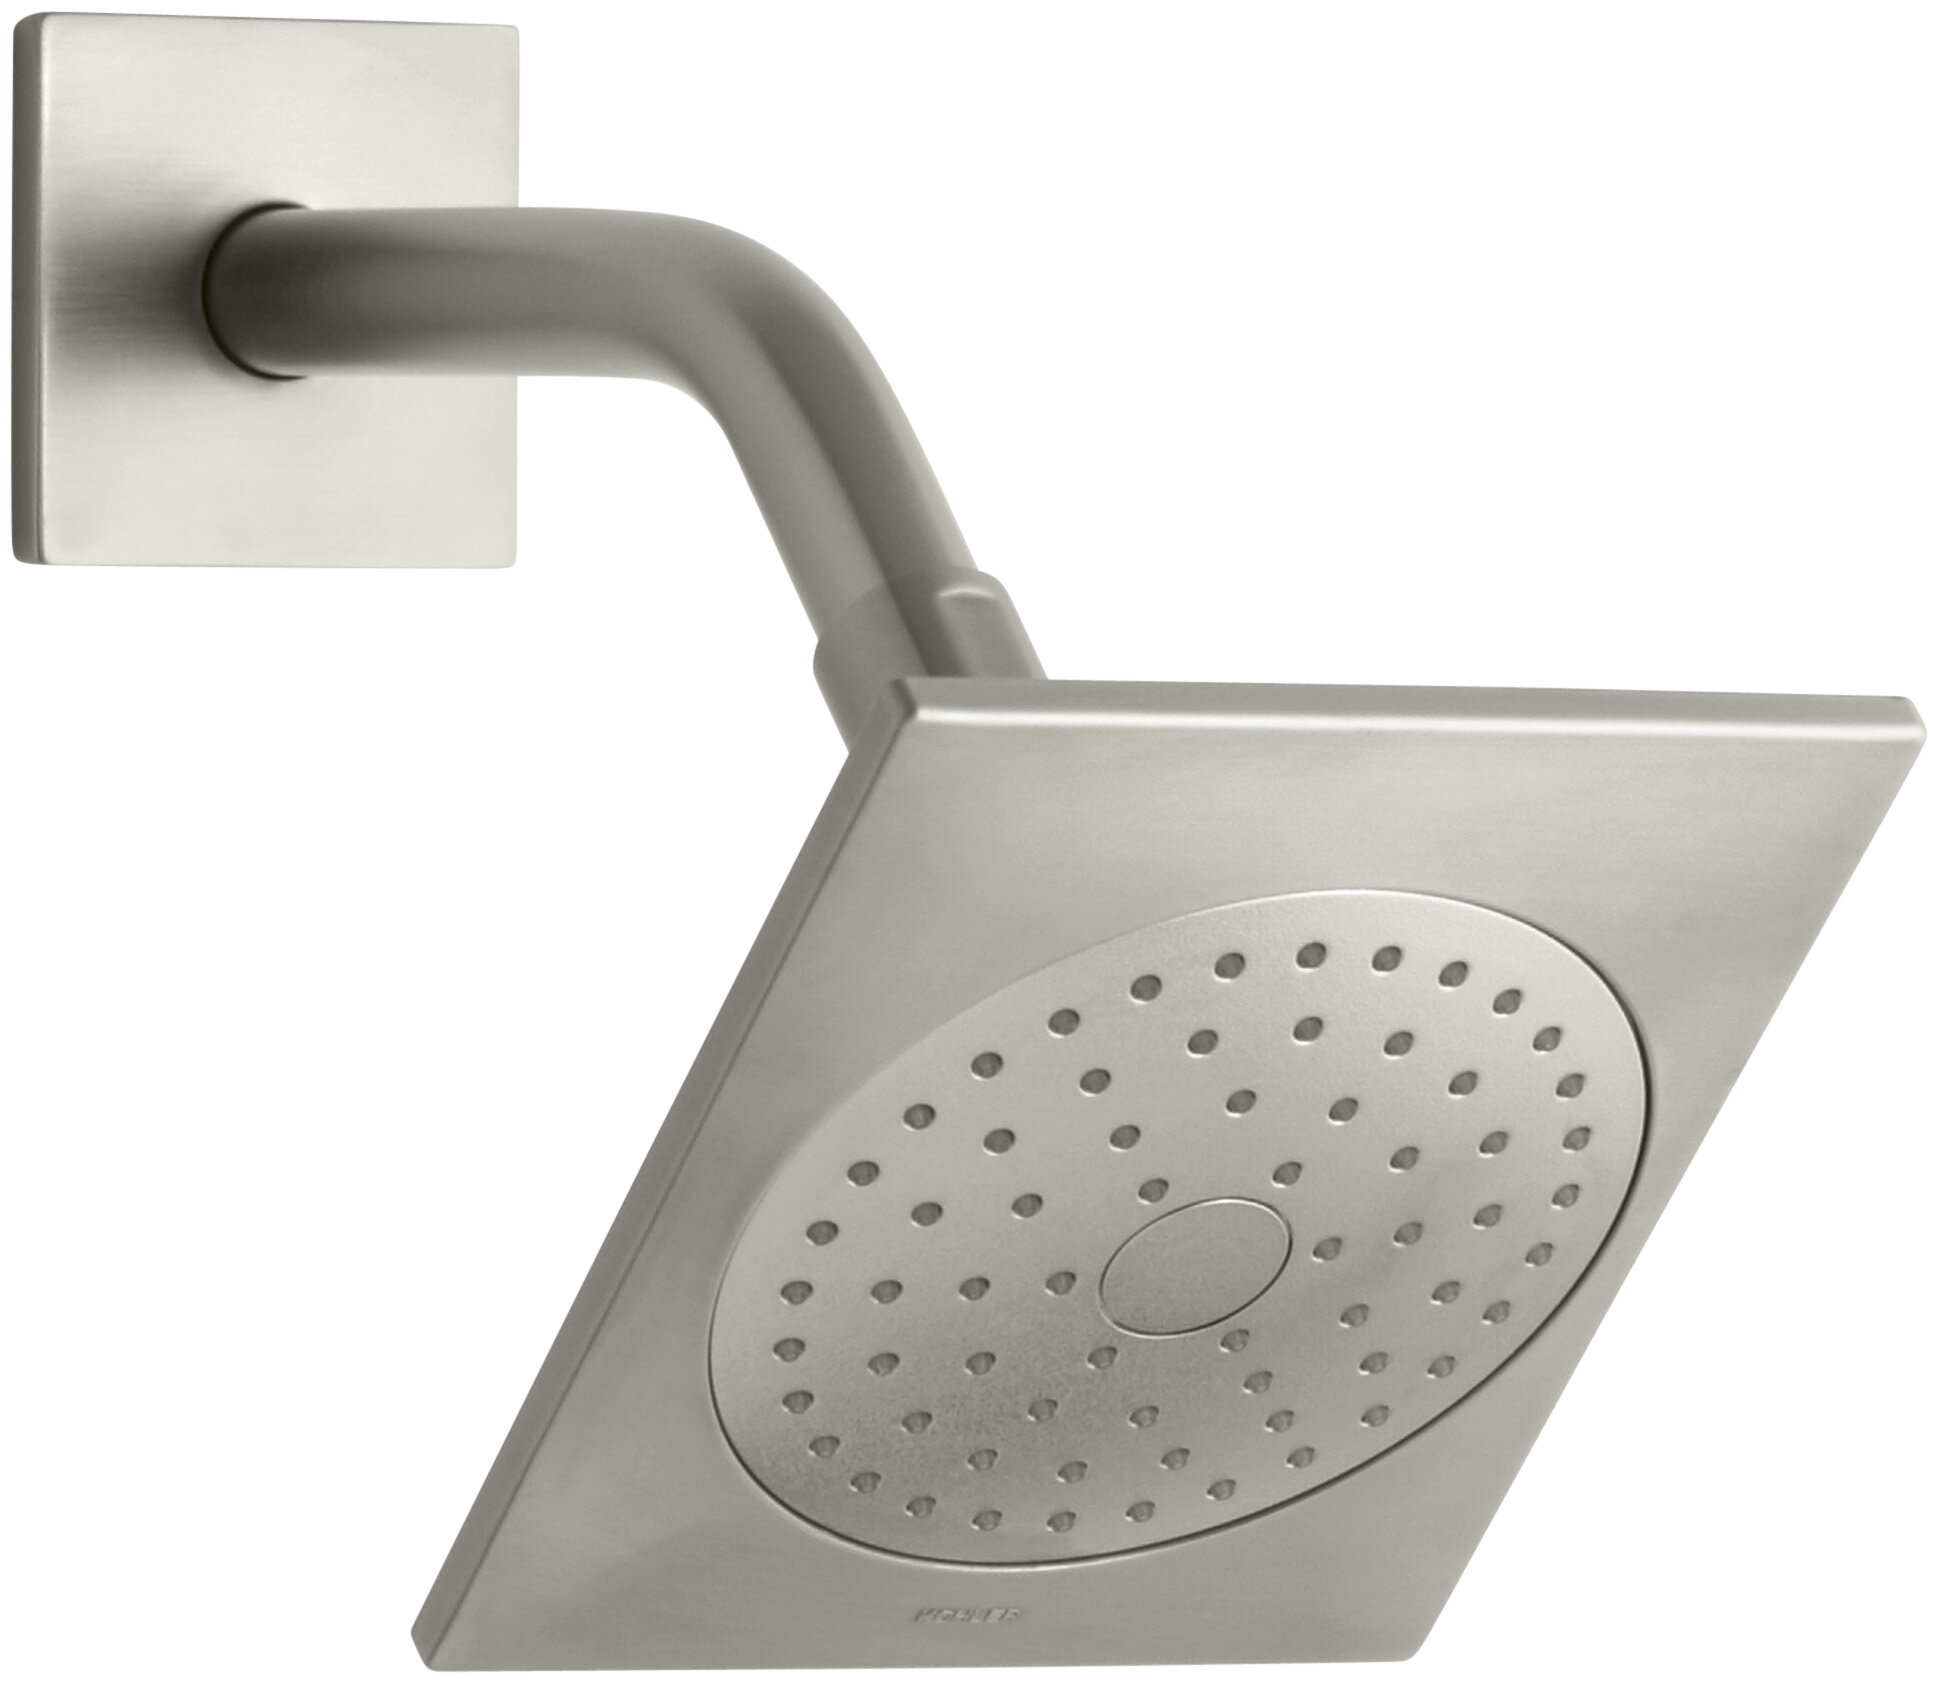 Loure 2 5 Gpm Single Function Shower Head With Katalyst Air Induction Spray